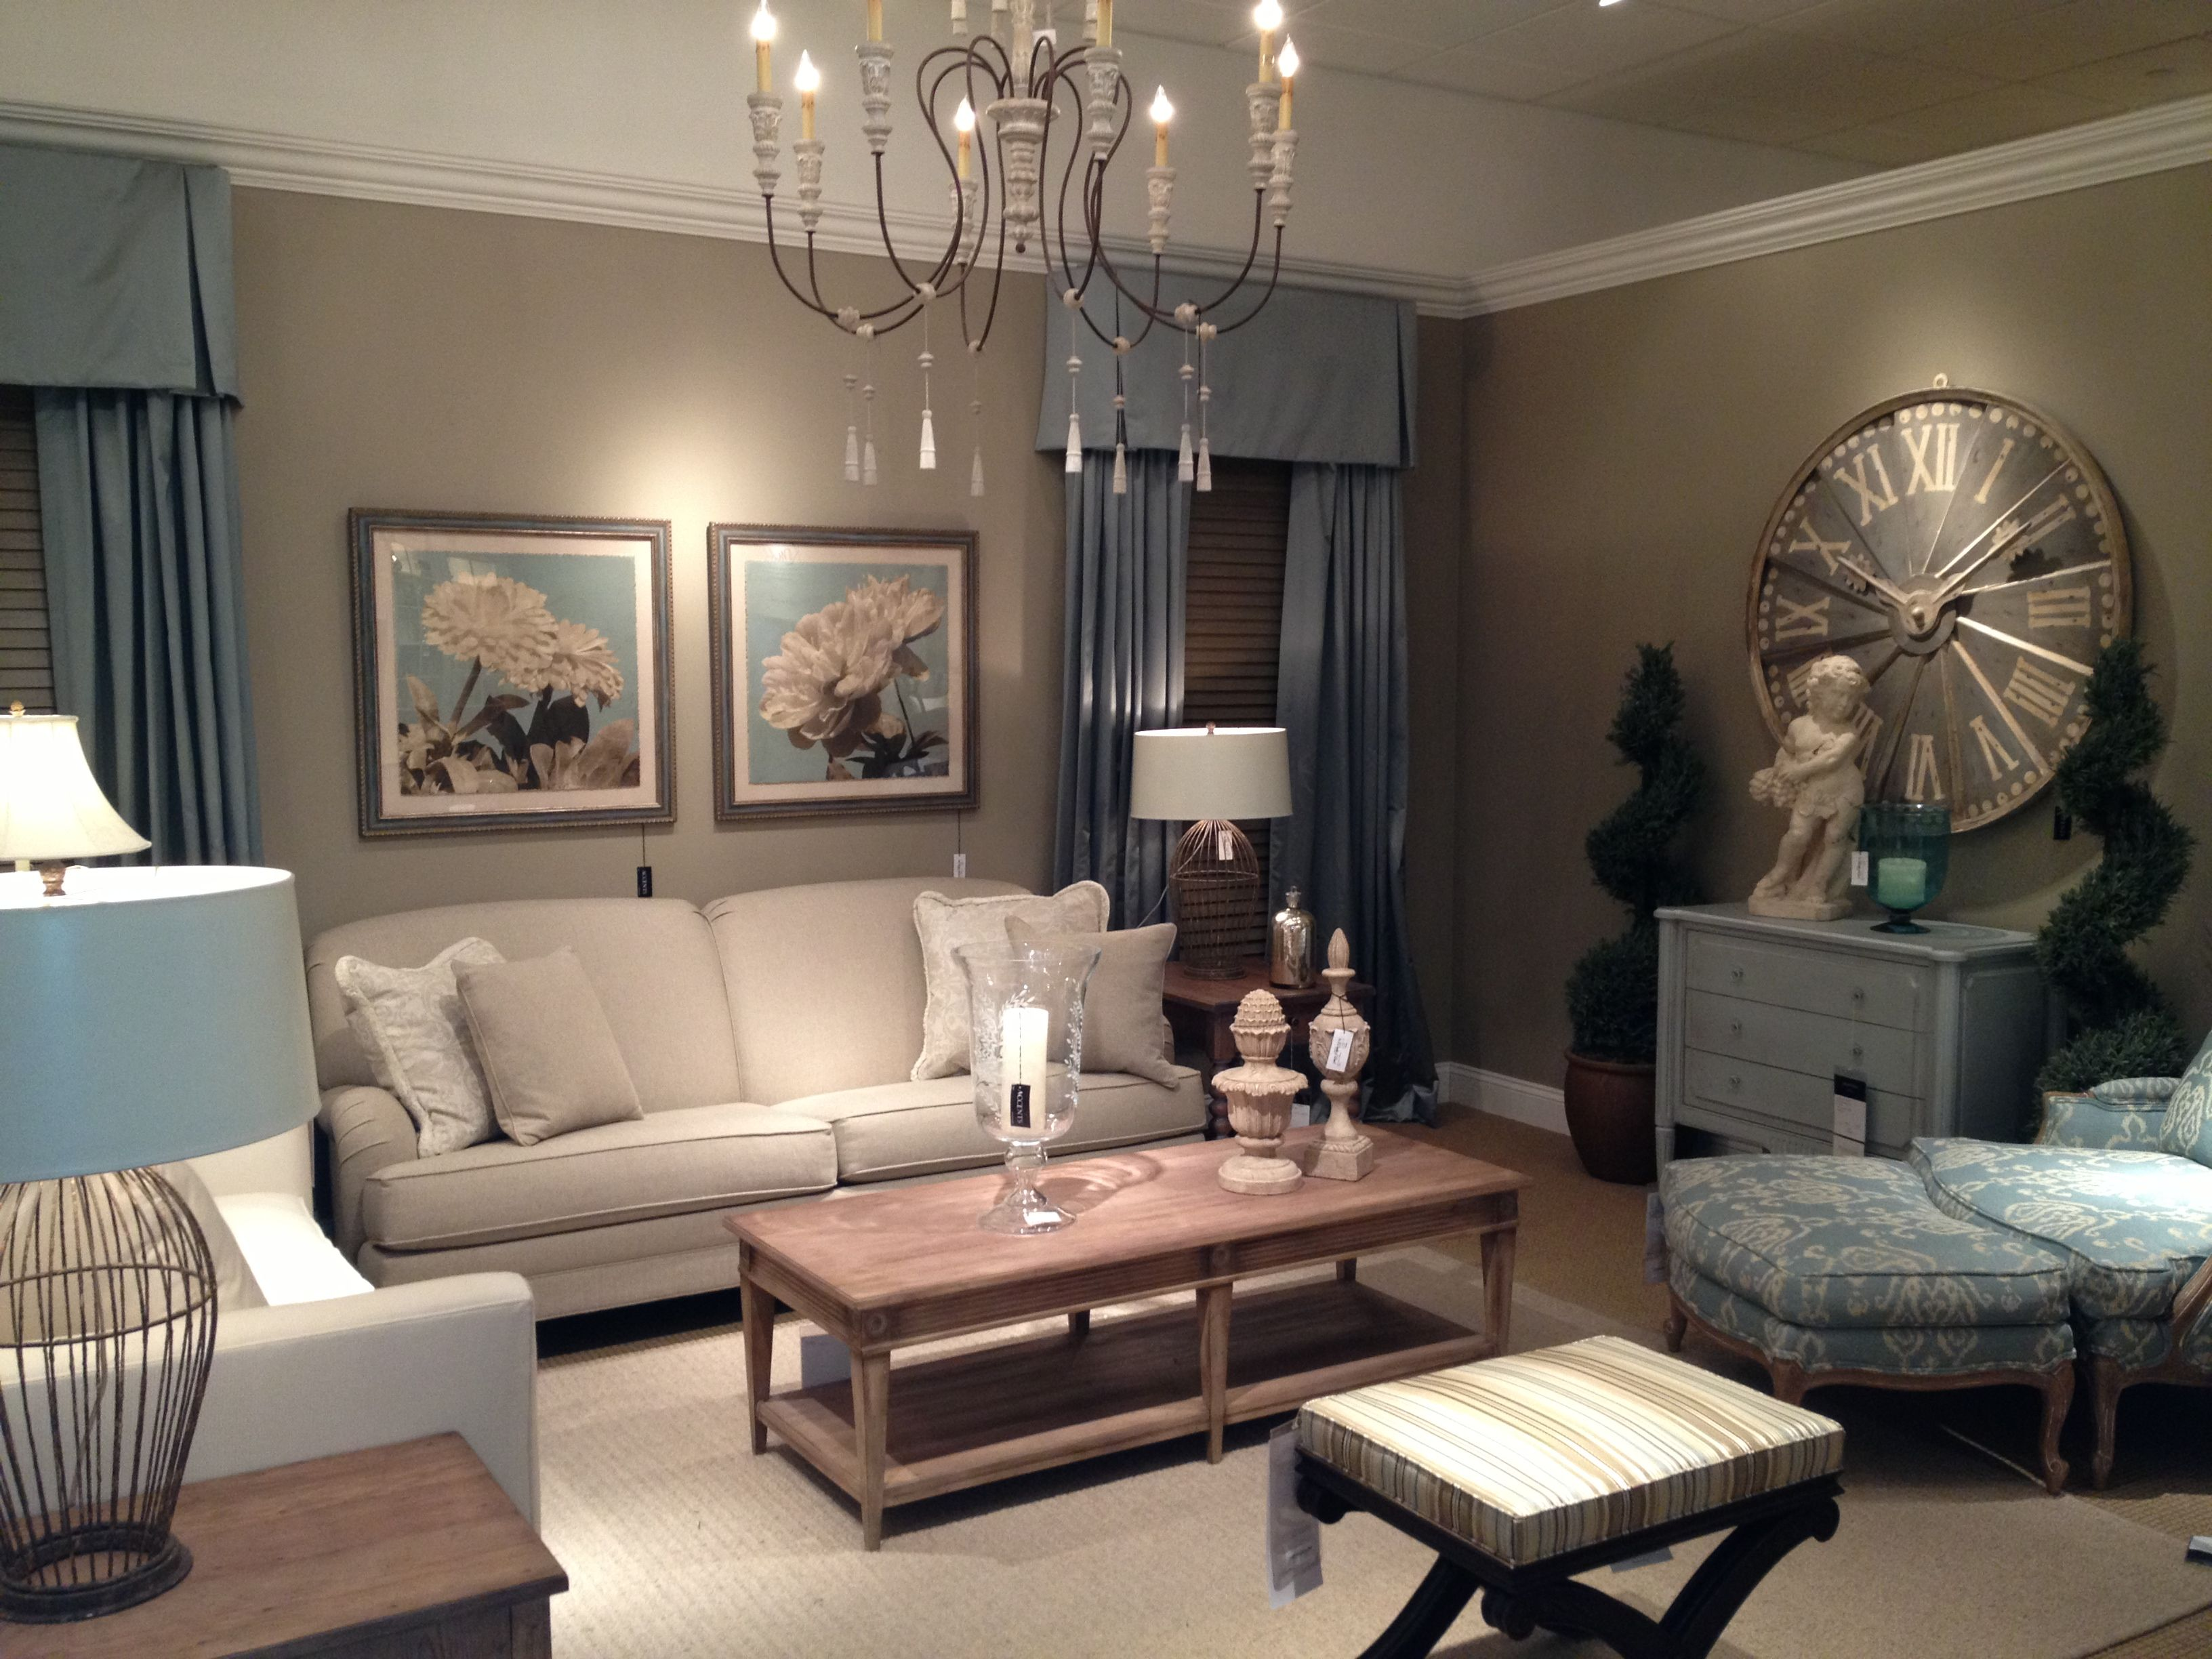 Ethan Allen Living Room For The Home Pinterest Living Rooms Room And Room Ideas